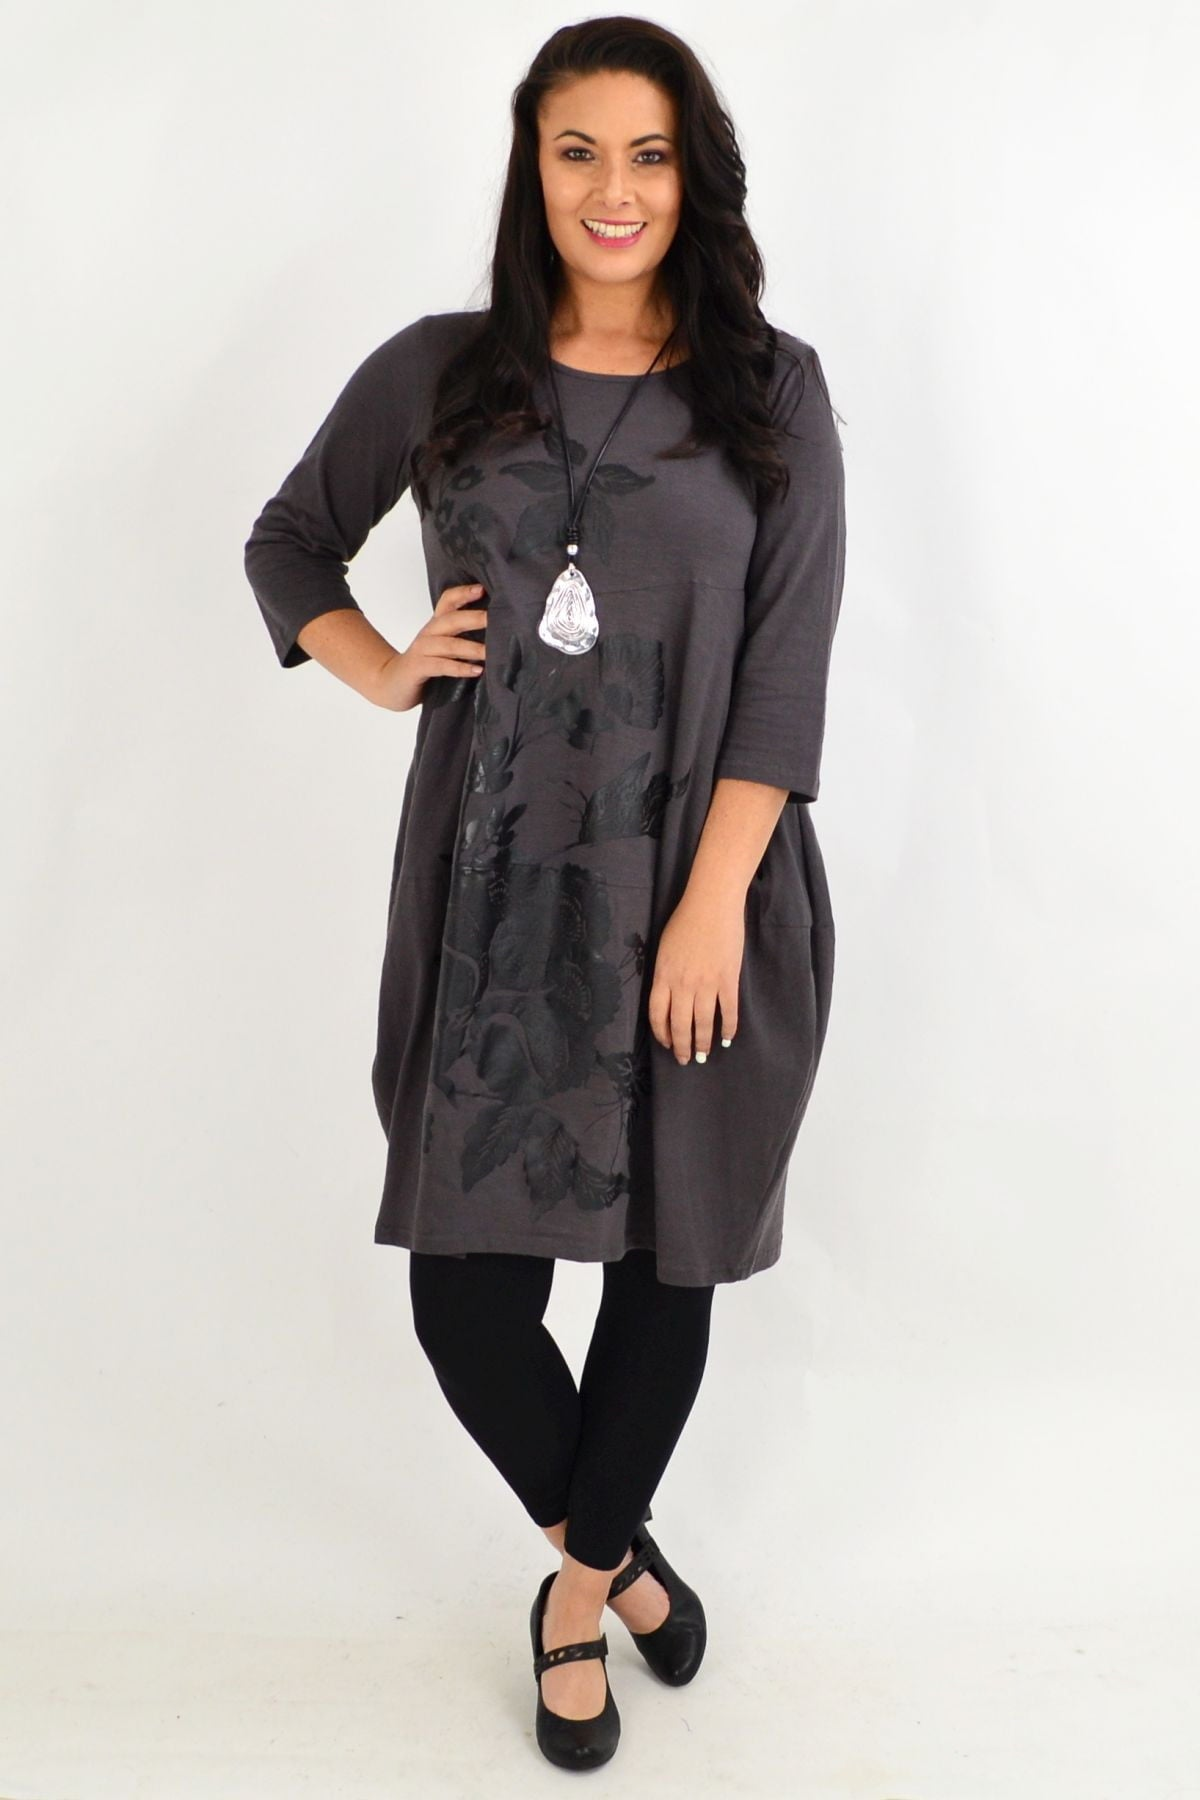 Fillipo Floral Grey Bounce Tunic Dress | I Love Tunics | Tunic Tops | Tunic | Tunic Dresses  | womens clothing online